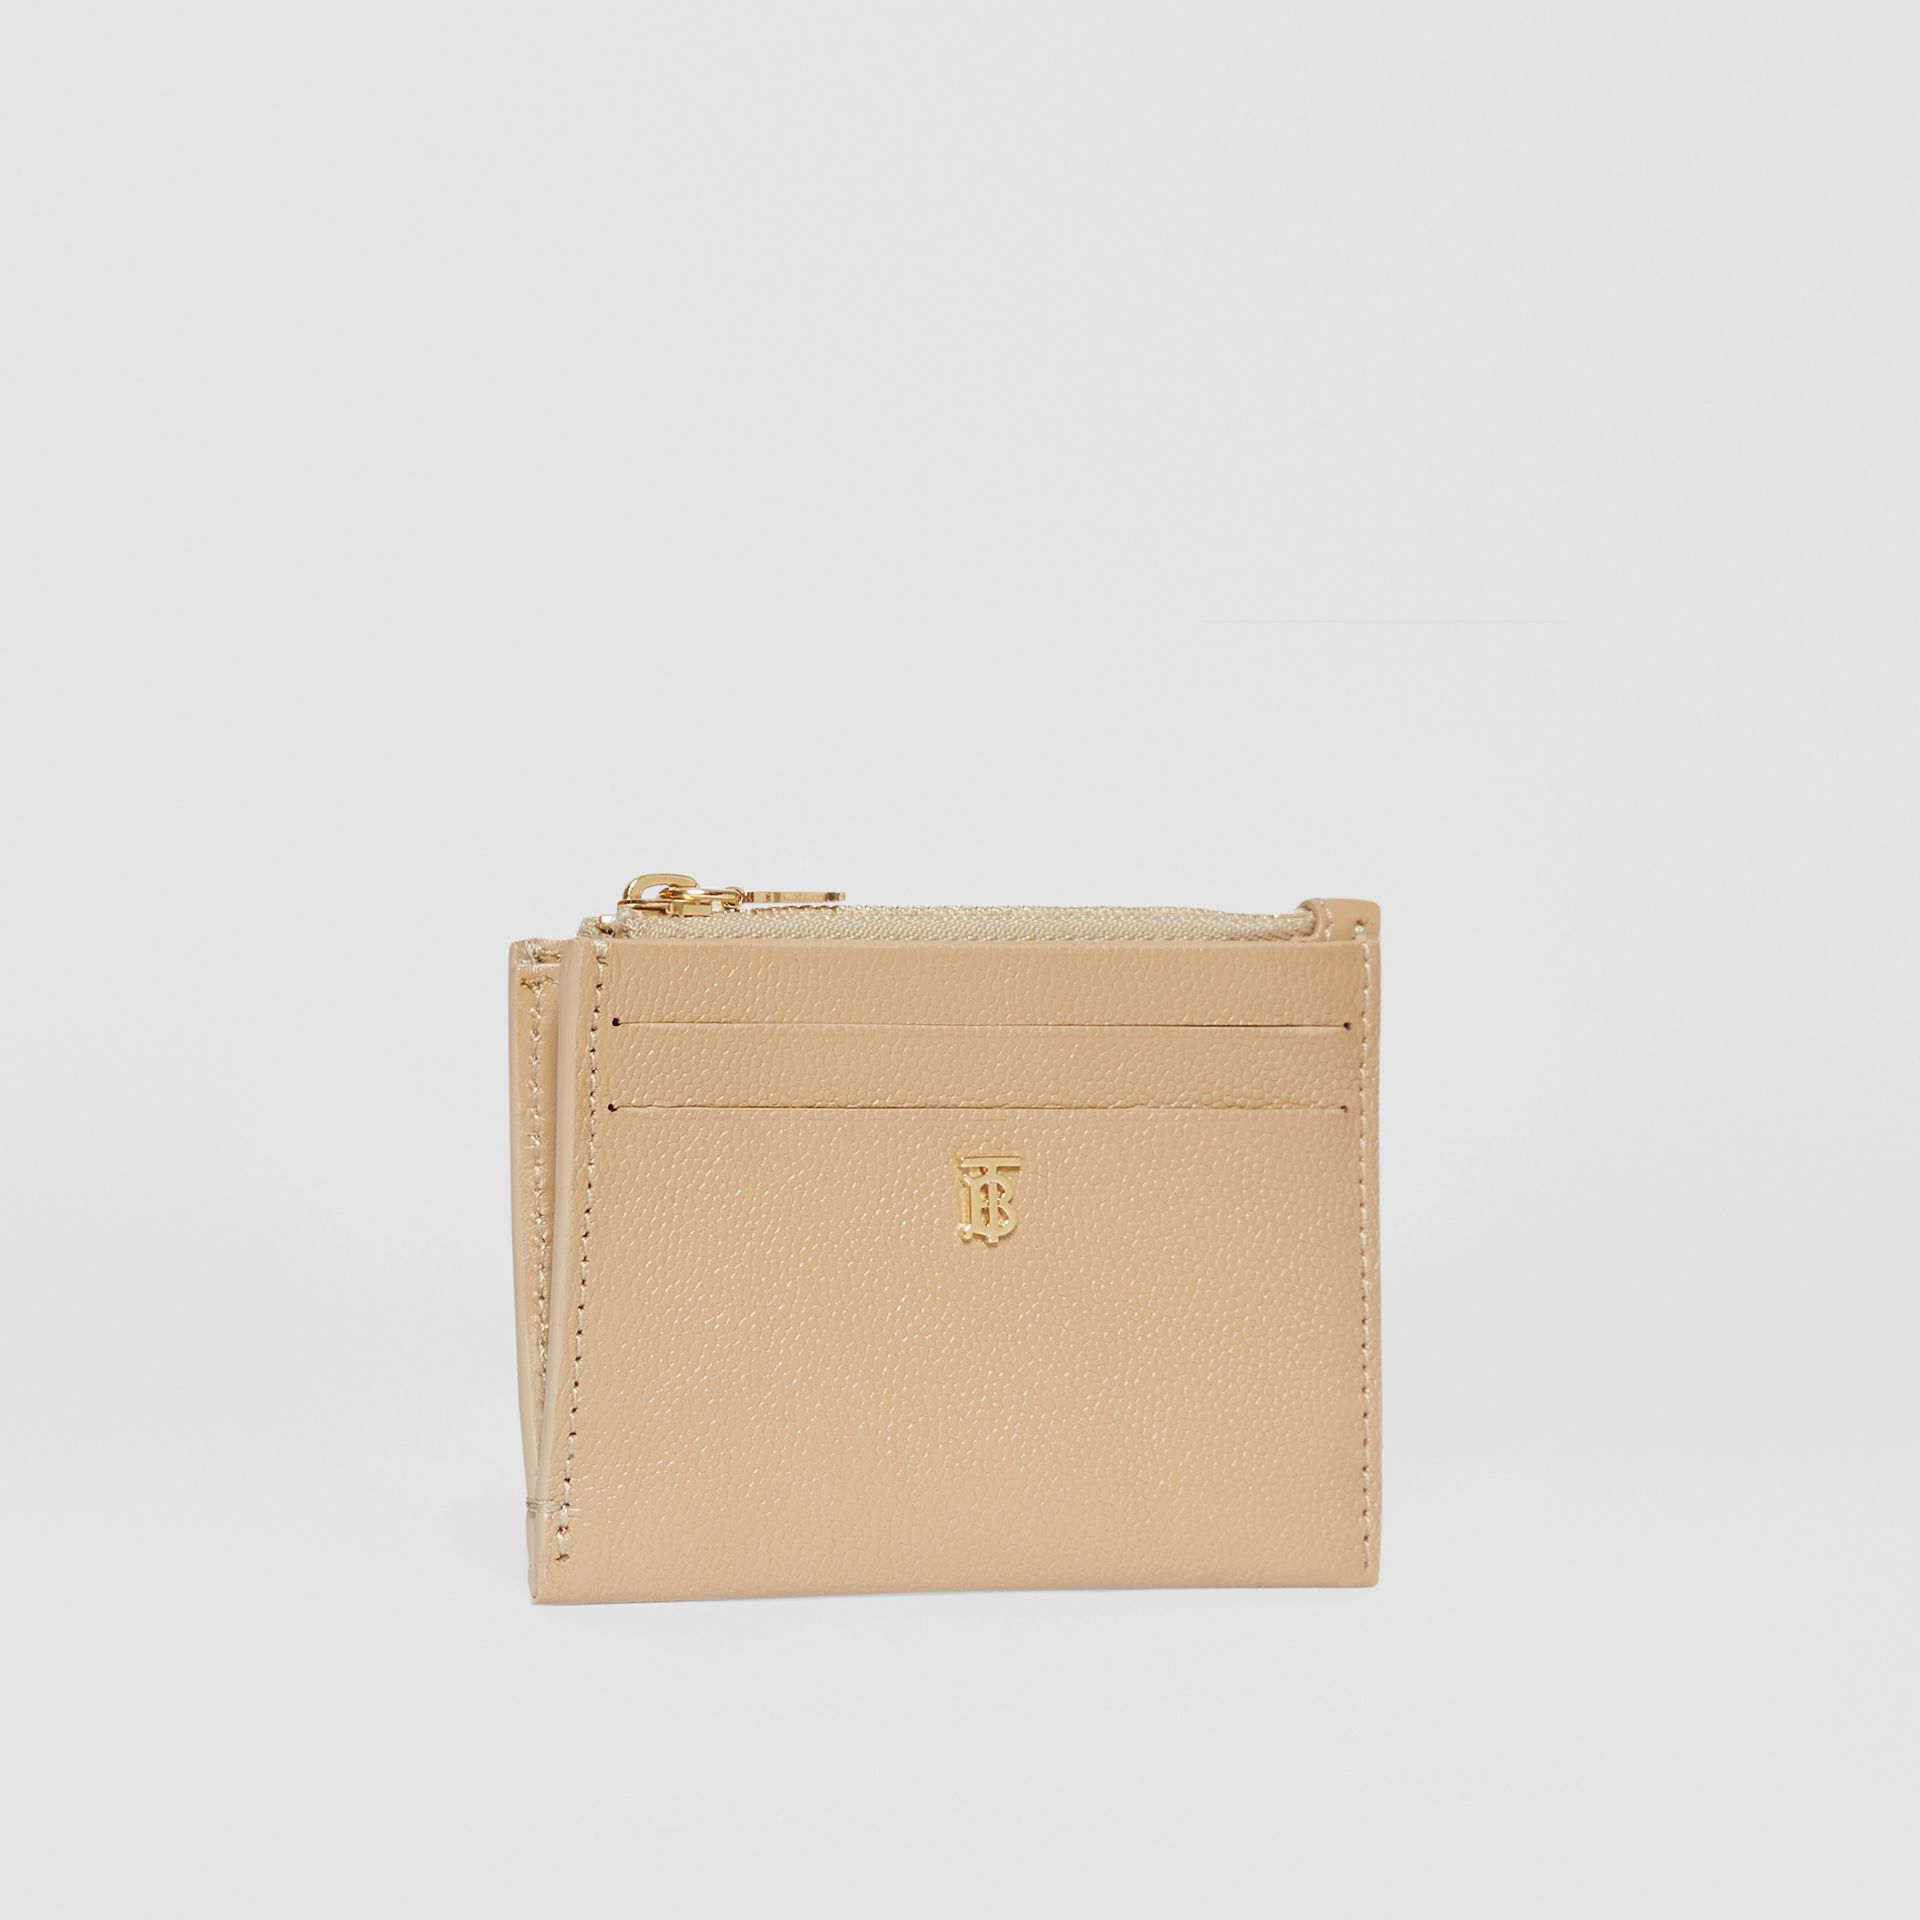 Monogram Motif Grainy Leather Zip Card Case in Archive Beige - Women | Burberry - gallery image 3